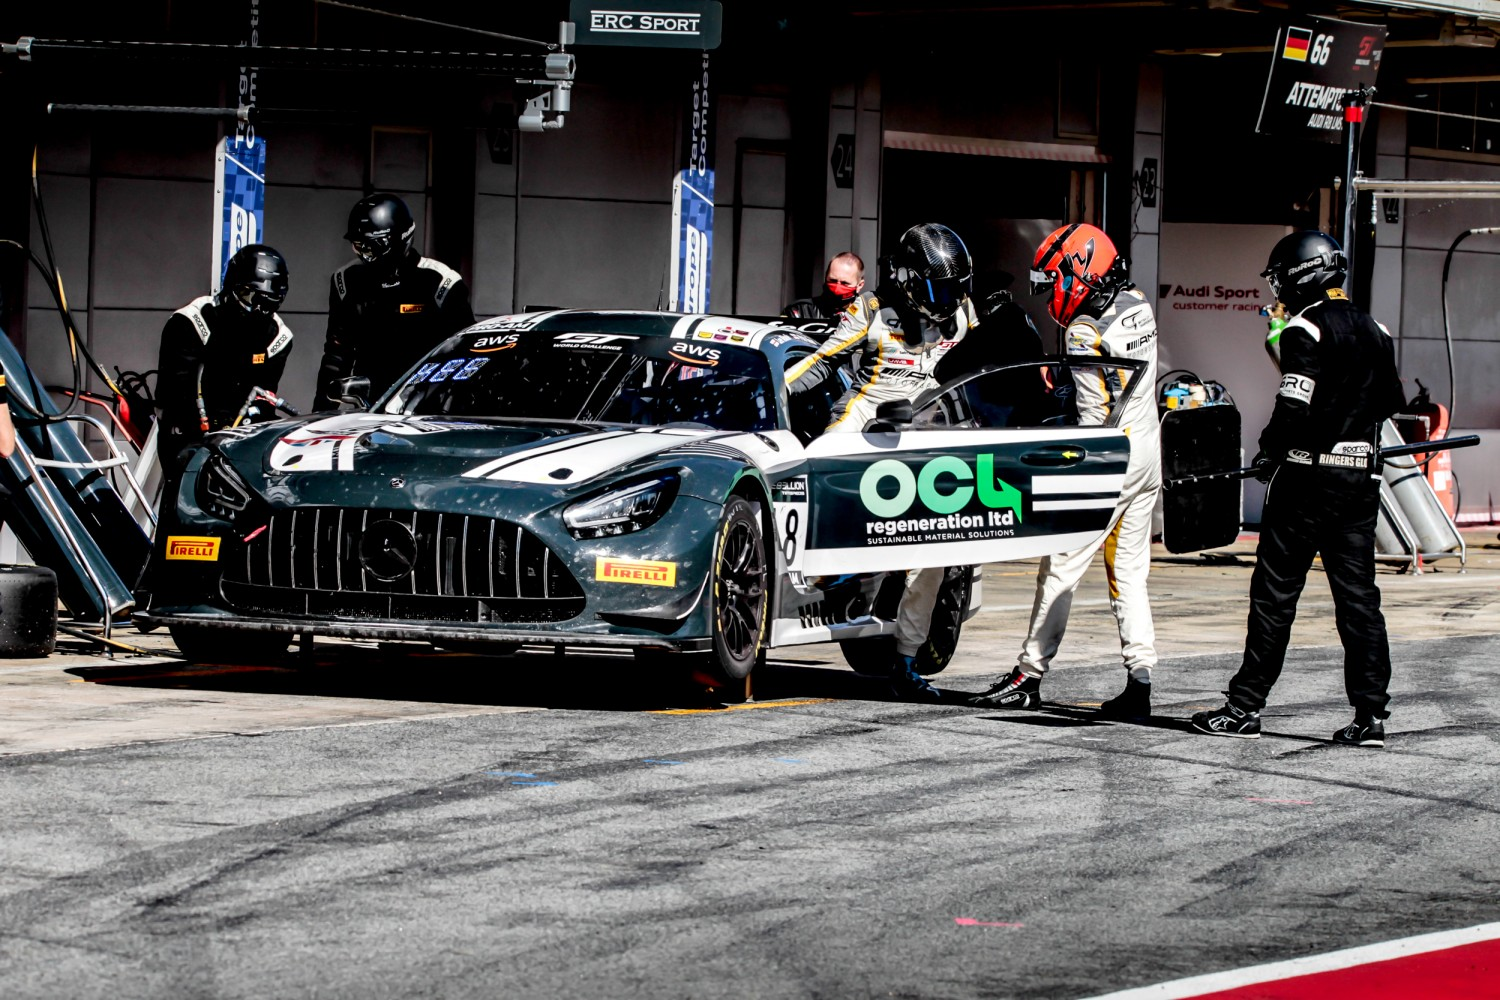 #18 ERC Sport GBR Mercedes-AMG GT3 Pro-Am Cup Lee Mowle GBR Phil Keen GBR, Pit Lane, Race 2  | SRO / Patrick Hecq Photography